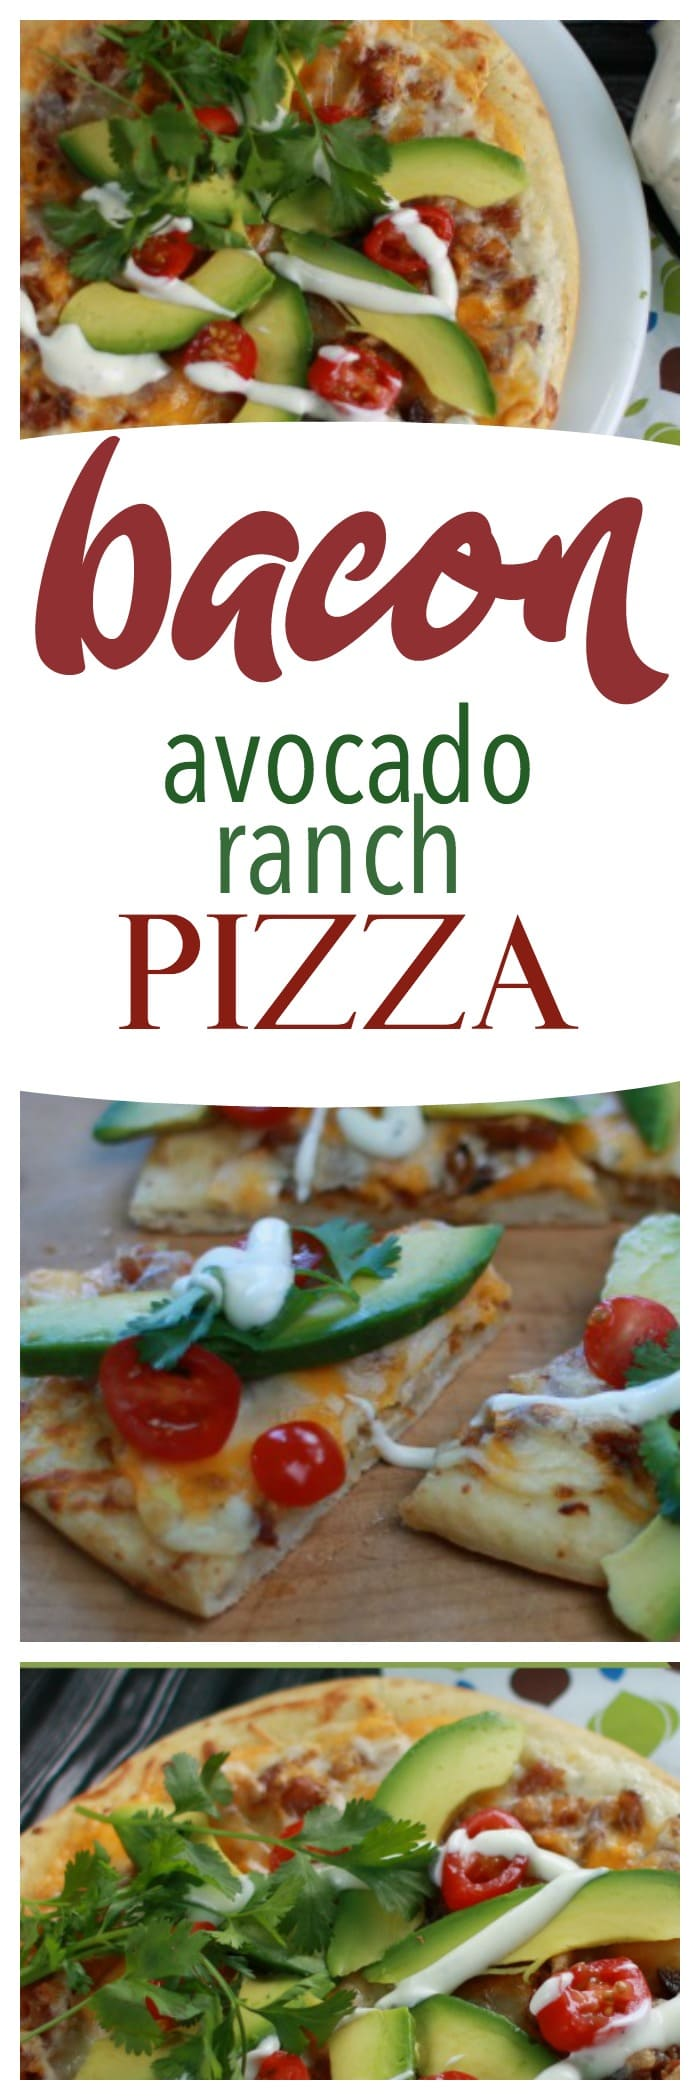 This quick bacon avocado pizza takes just minutes!